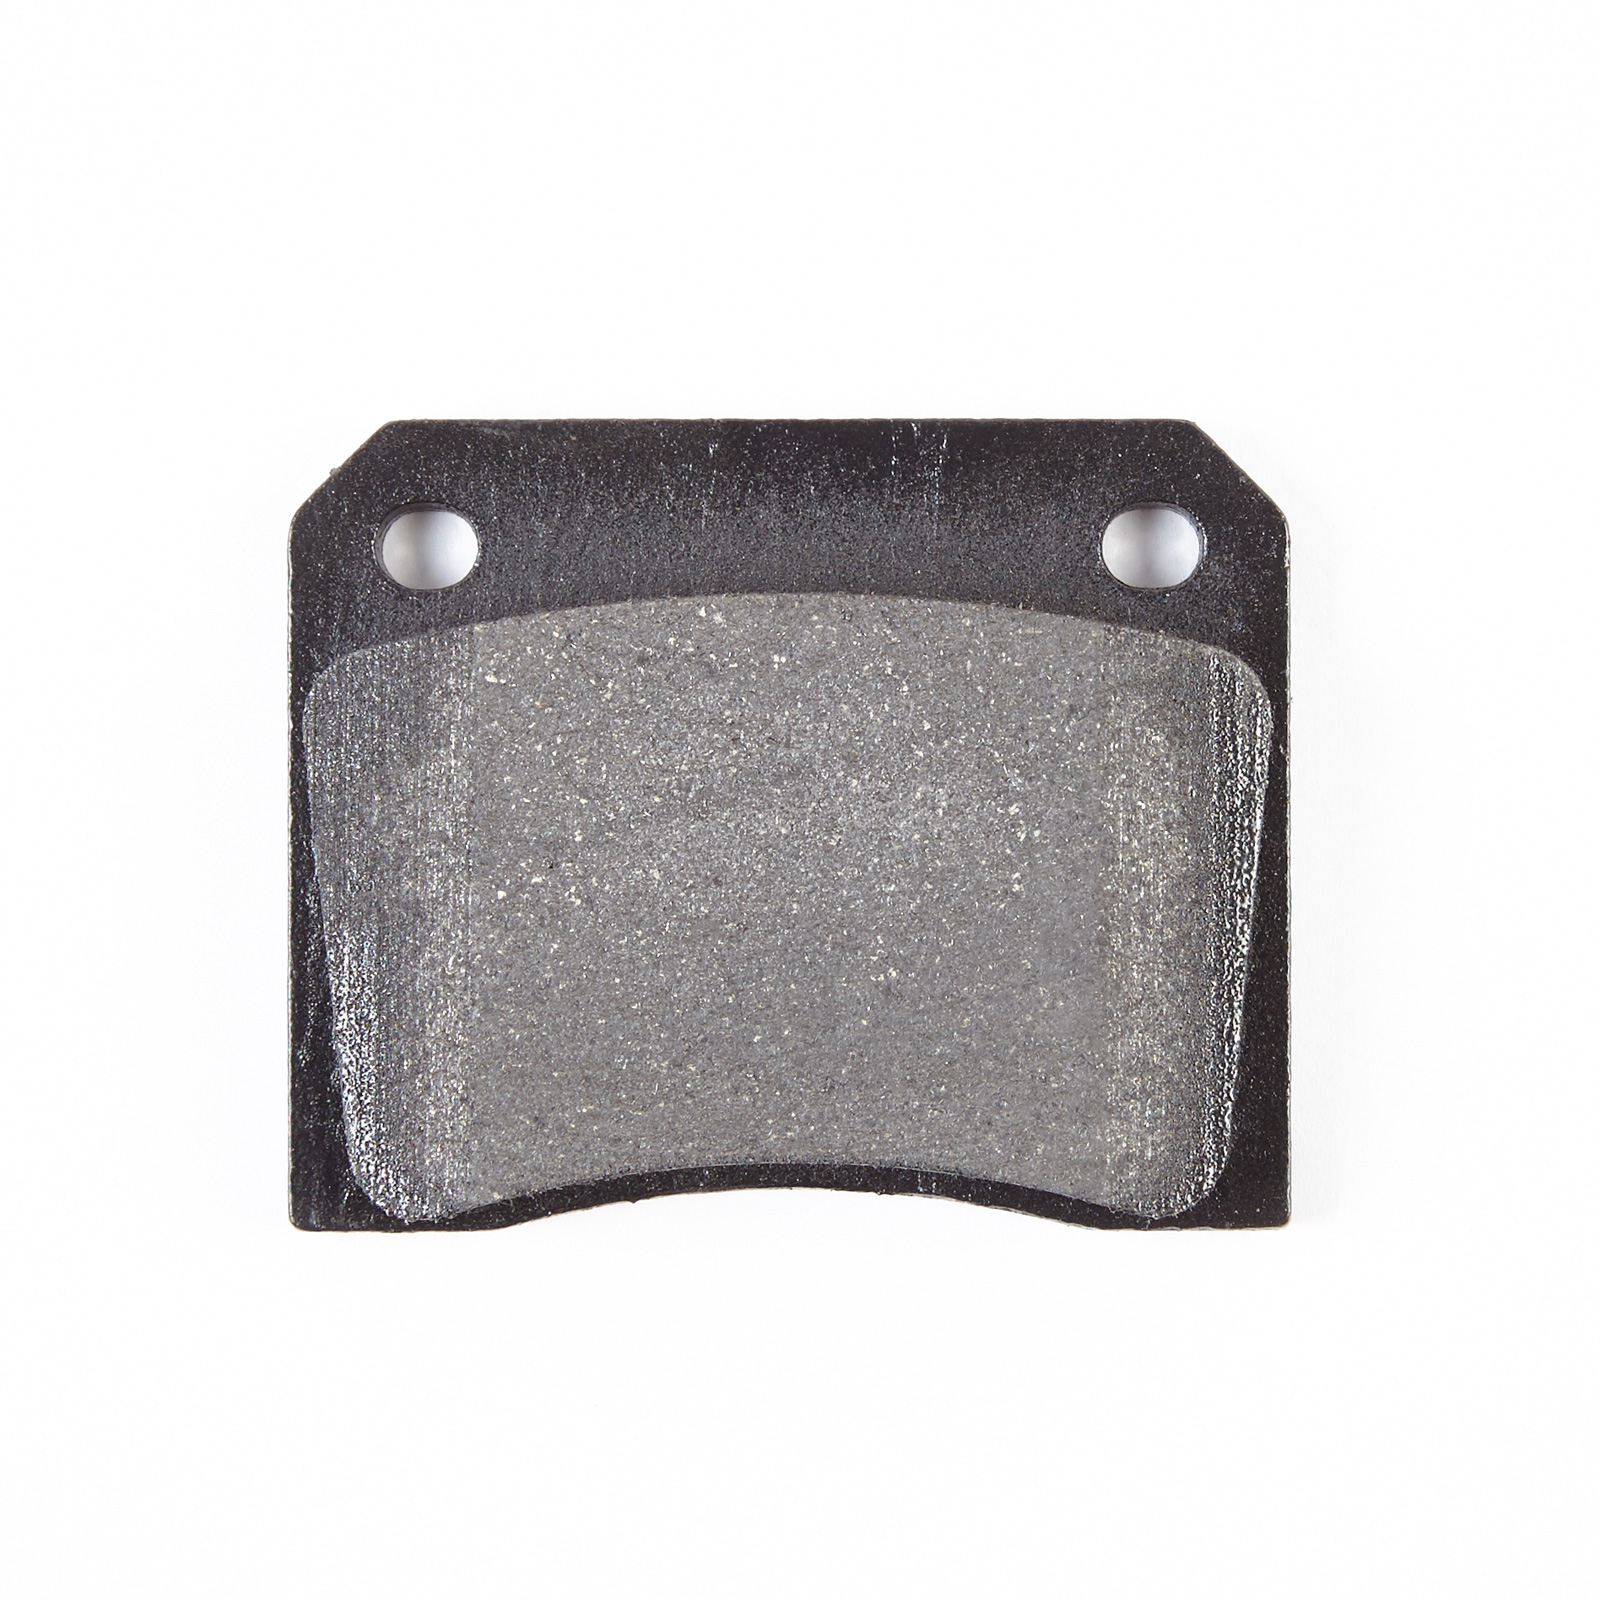 Ferrari Dino 260 GT Rear Brake Pads